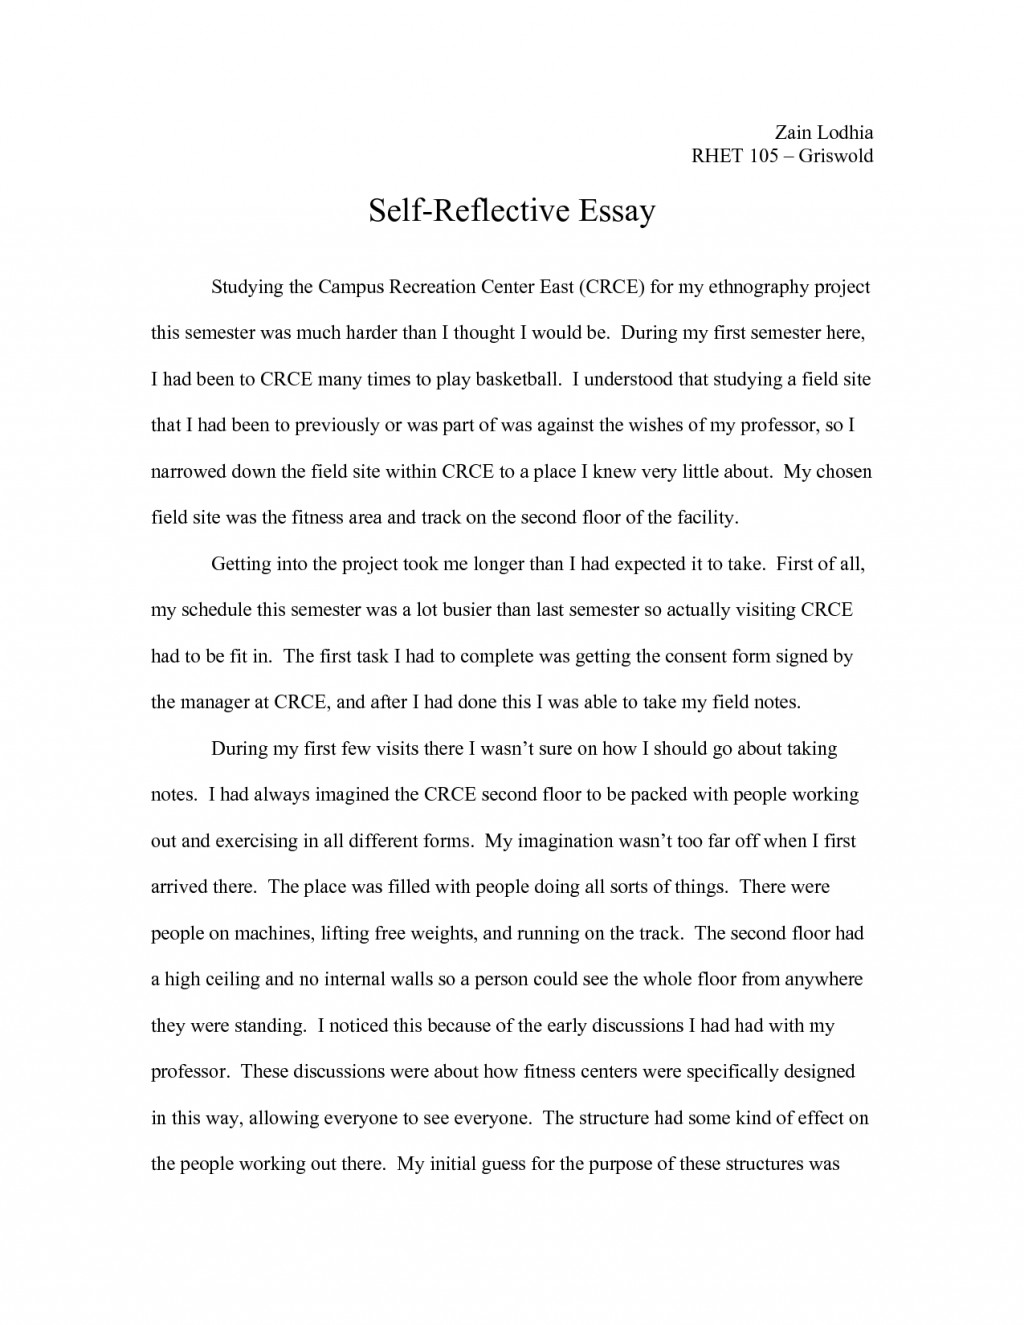 003 Qal0pwnf46 Reflective Essays Beautiful Essay Examples For Middle School Apa High Large